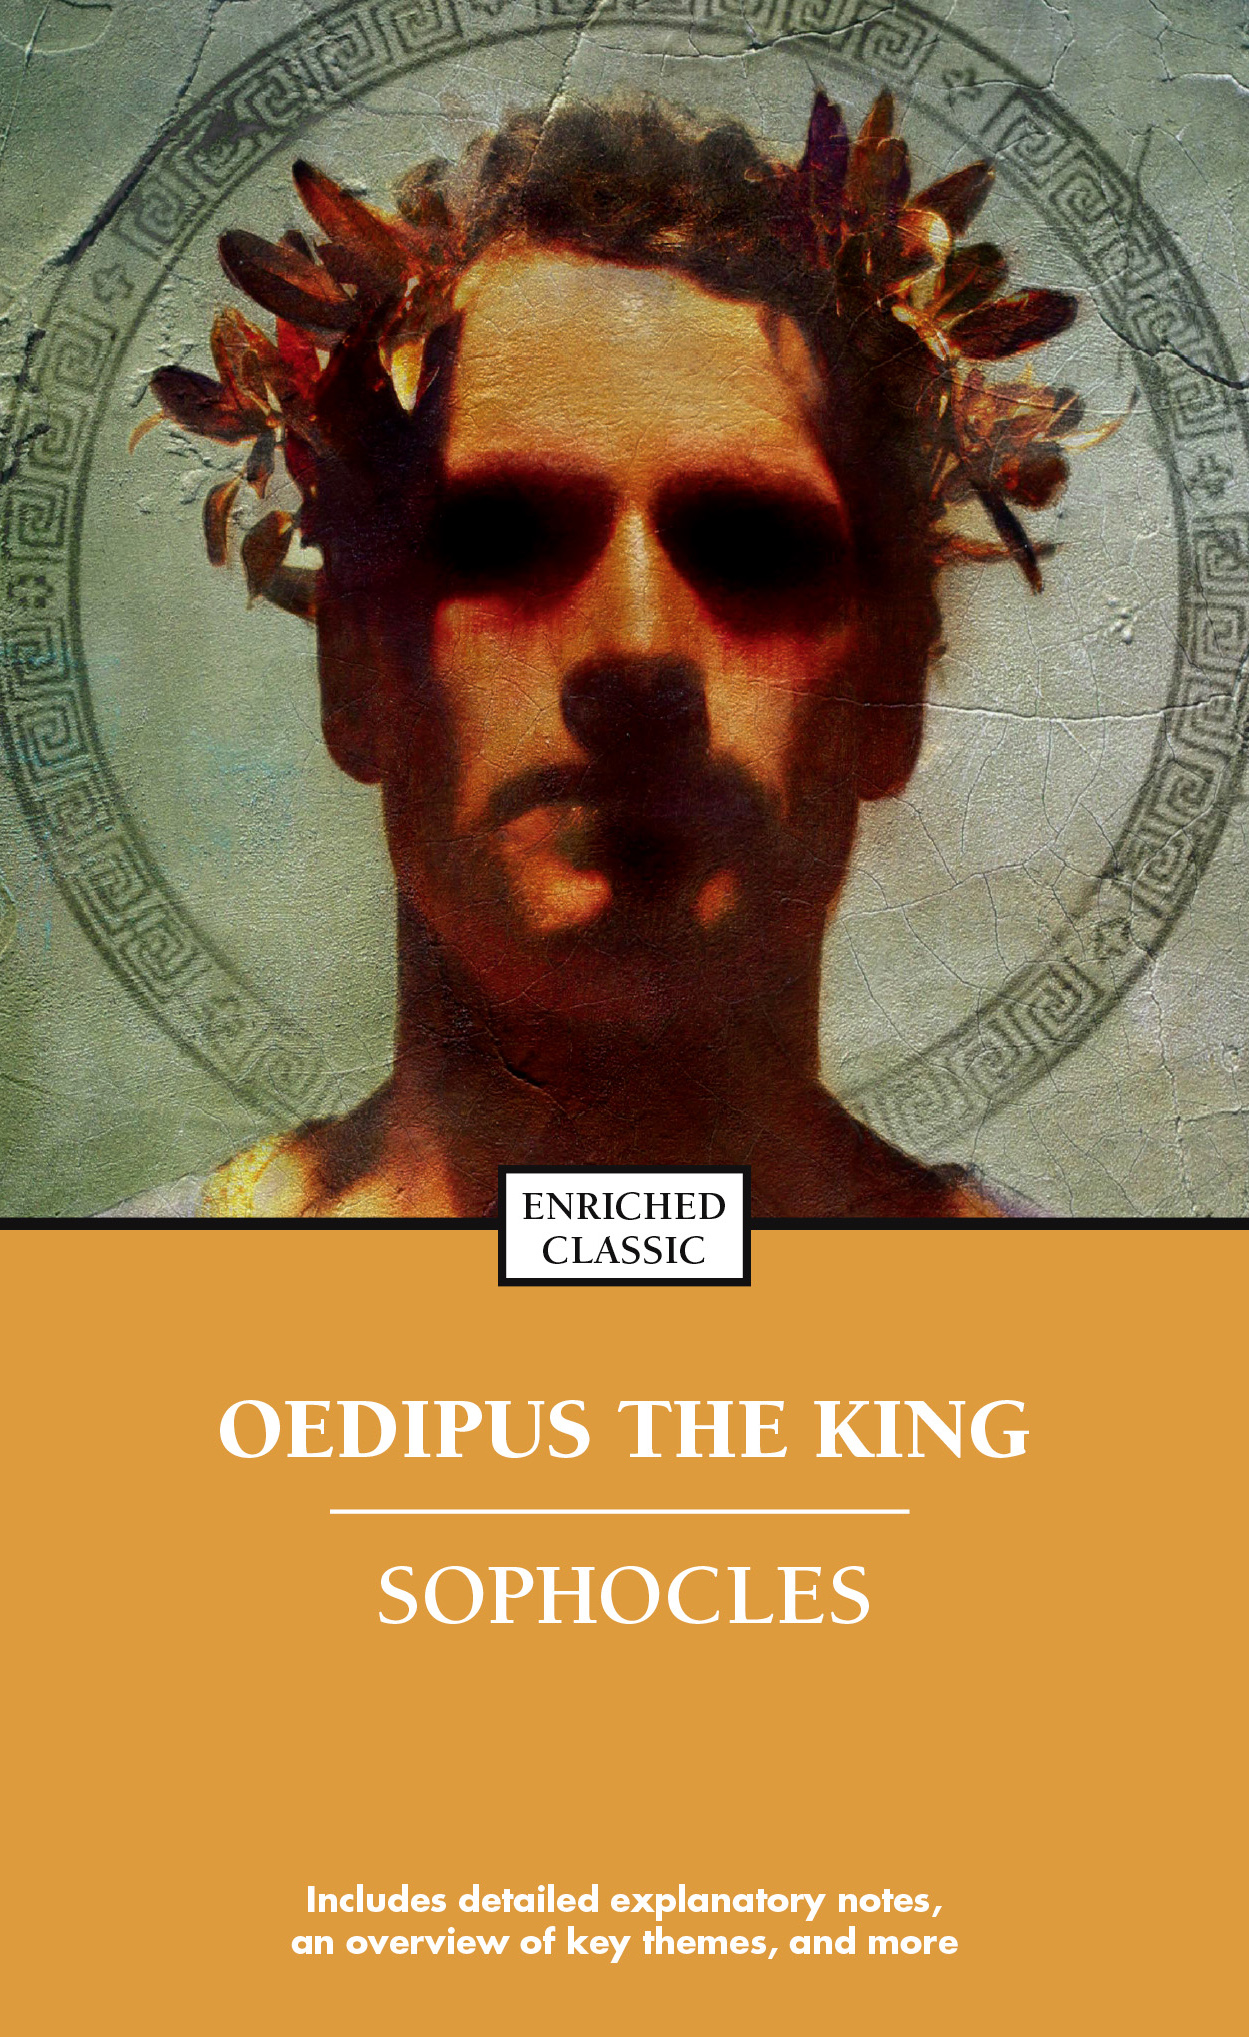 oedipus the king a hero in the play of sophocles Sophocles i: antigone, oedipus the king, oedipus at colonus - ebook written by sophocles read this book using google play books app on your pc, android, ios devices.